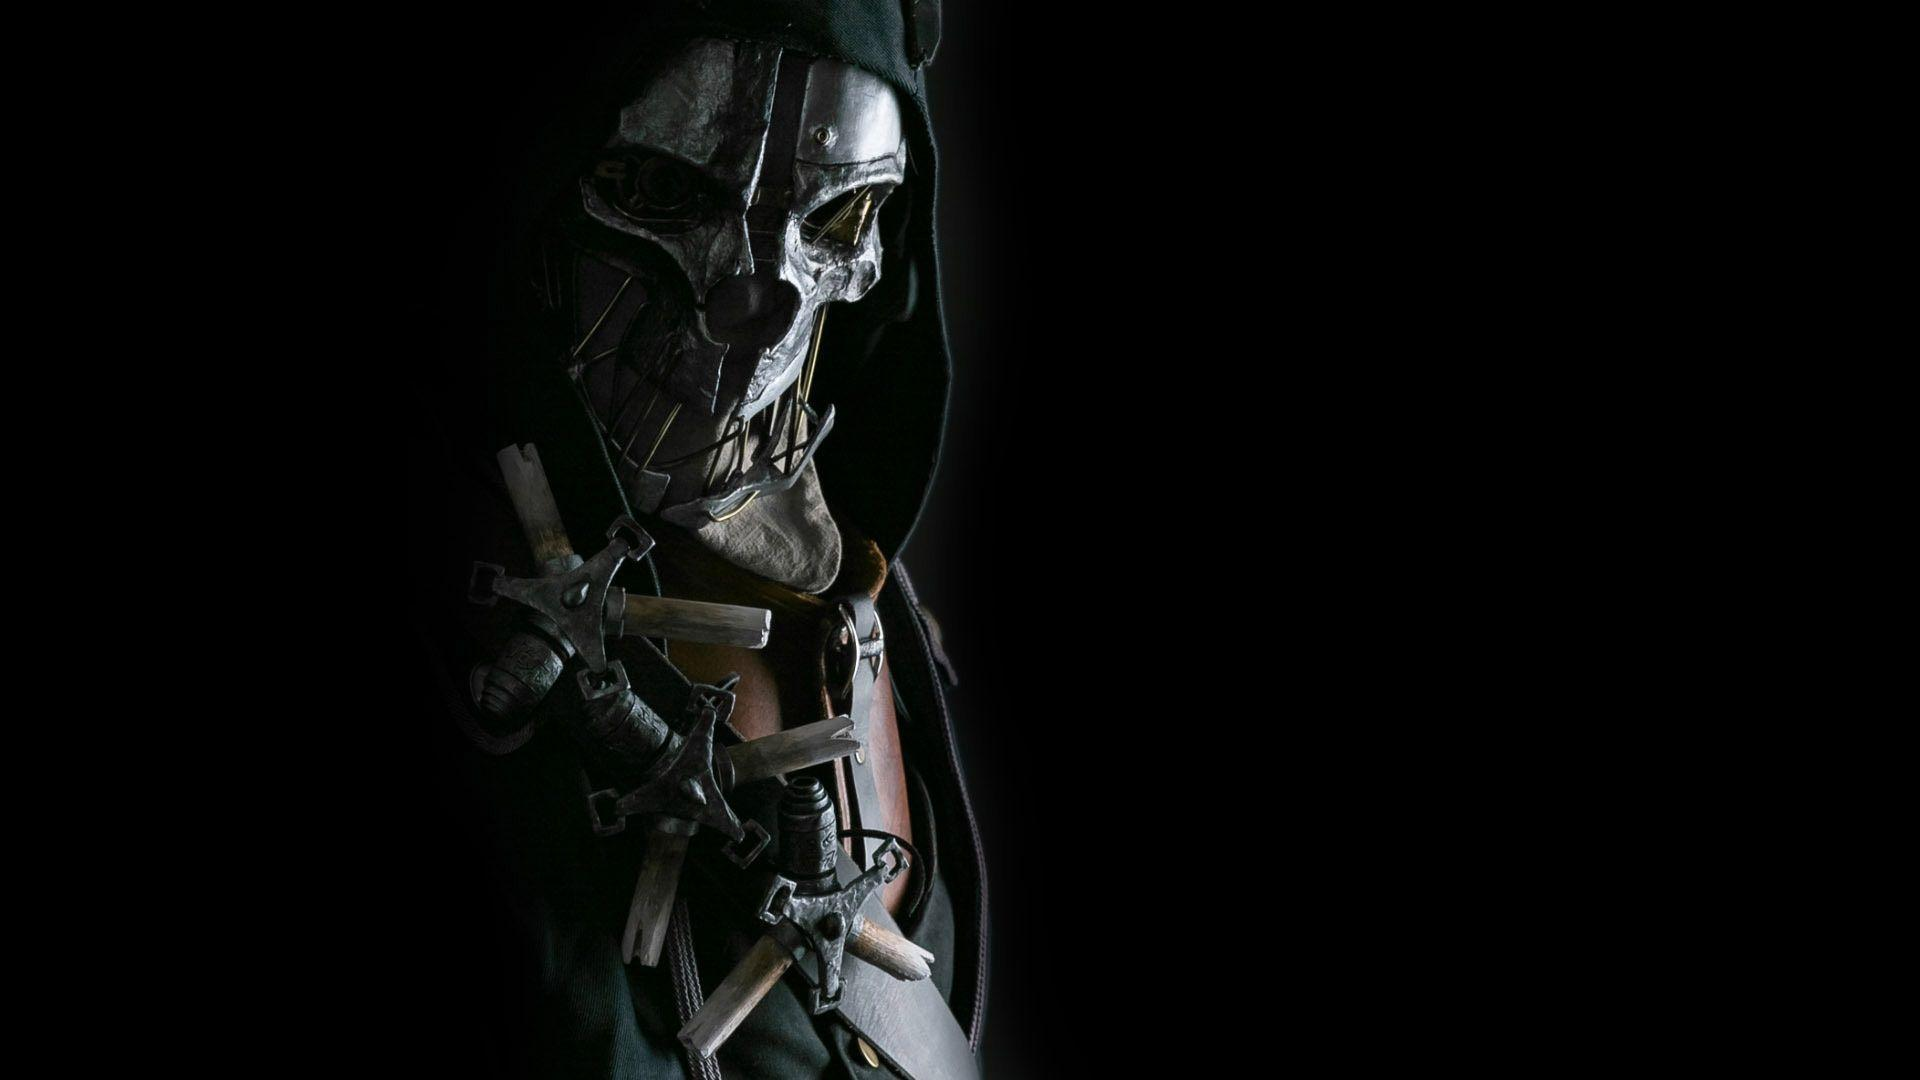 dishonored wallpapers wallpaper cave